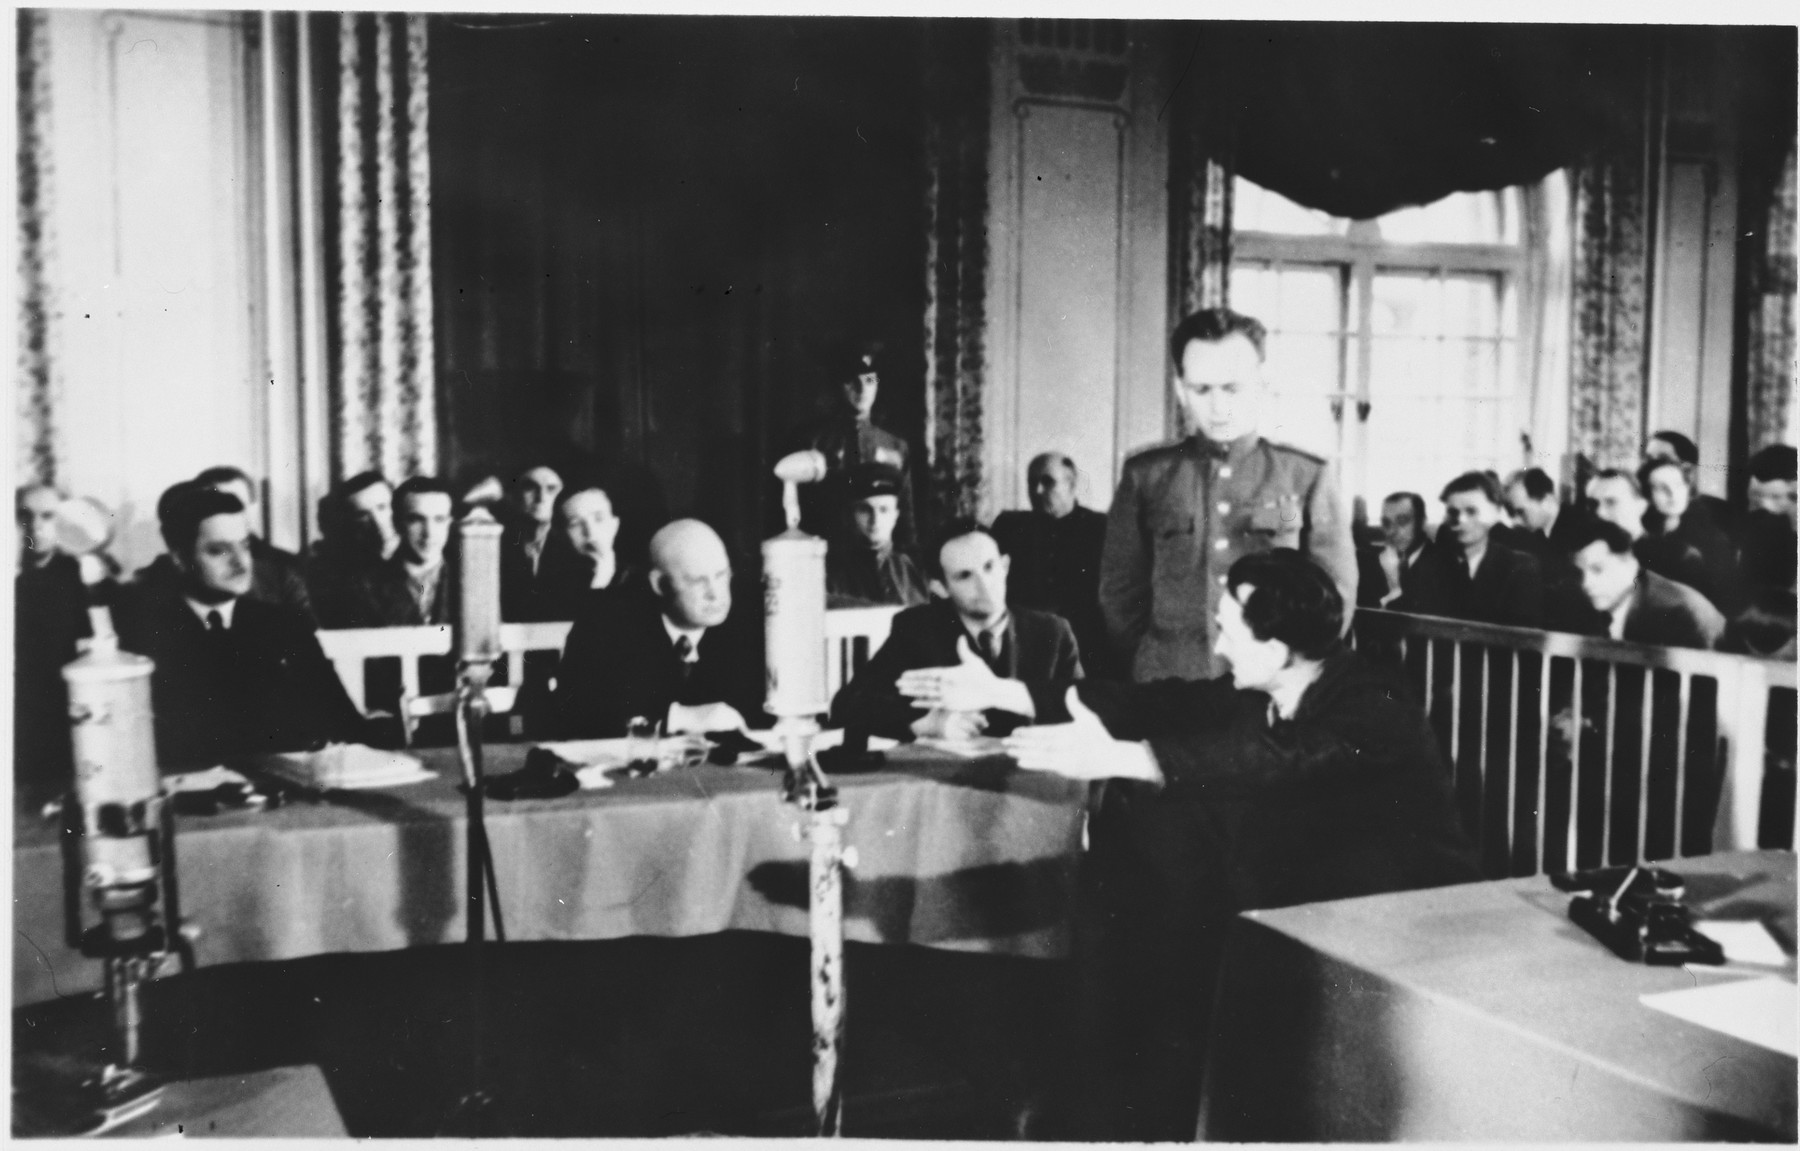 A witness testifies at the Sachsenhausen concentration camp war crimes trial in Berlin.